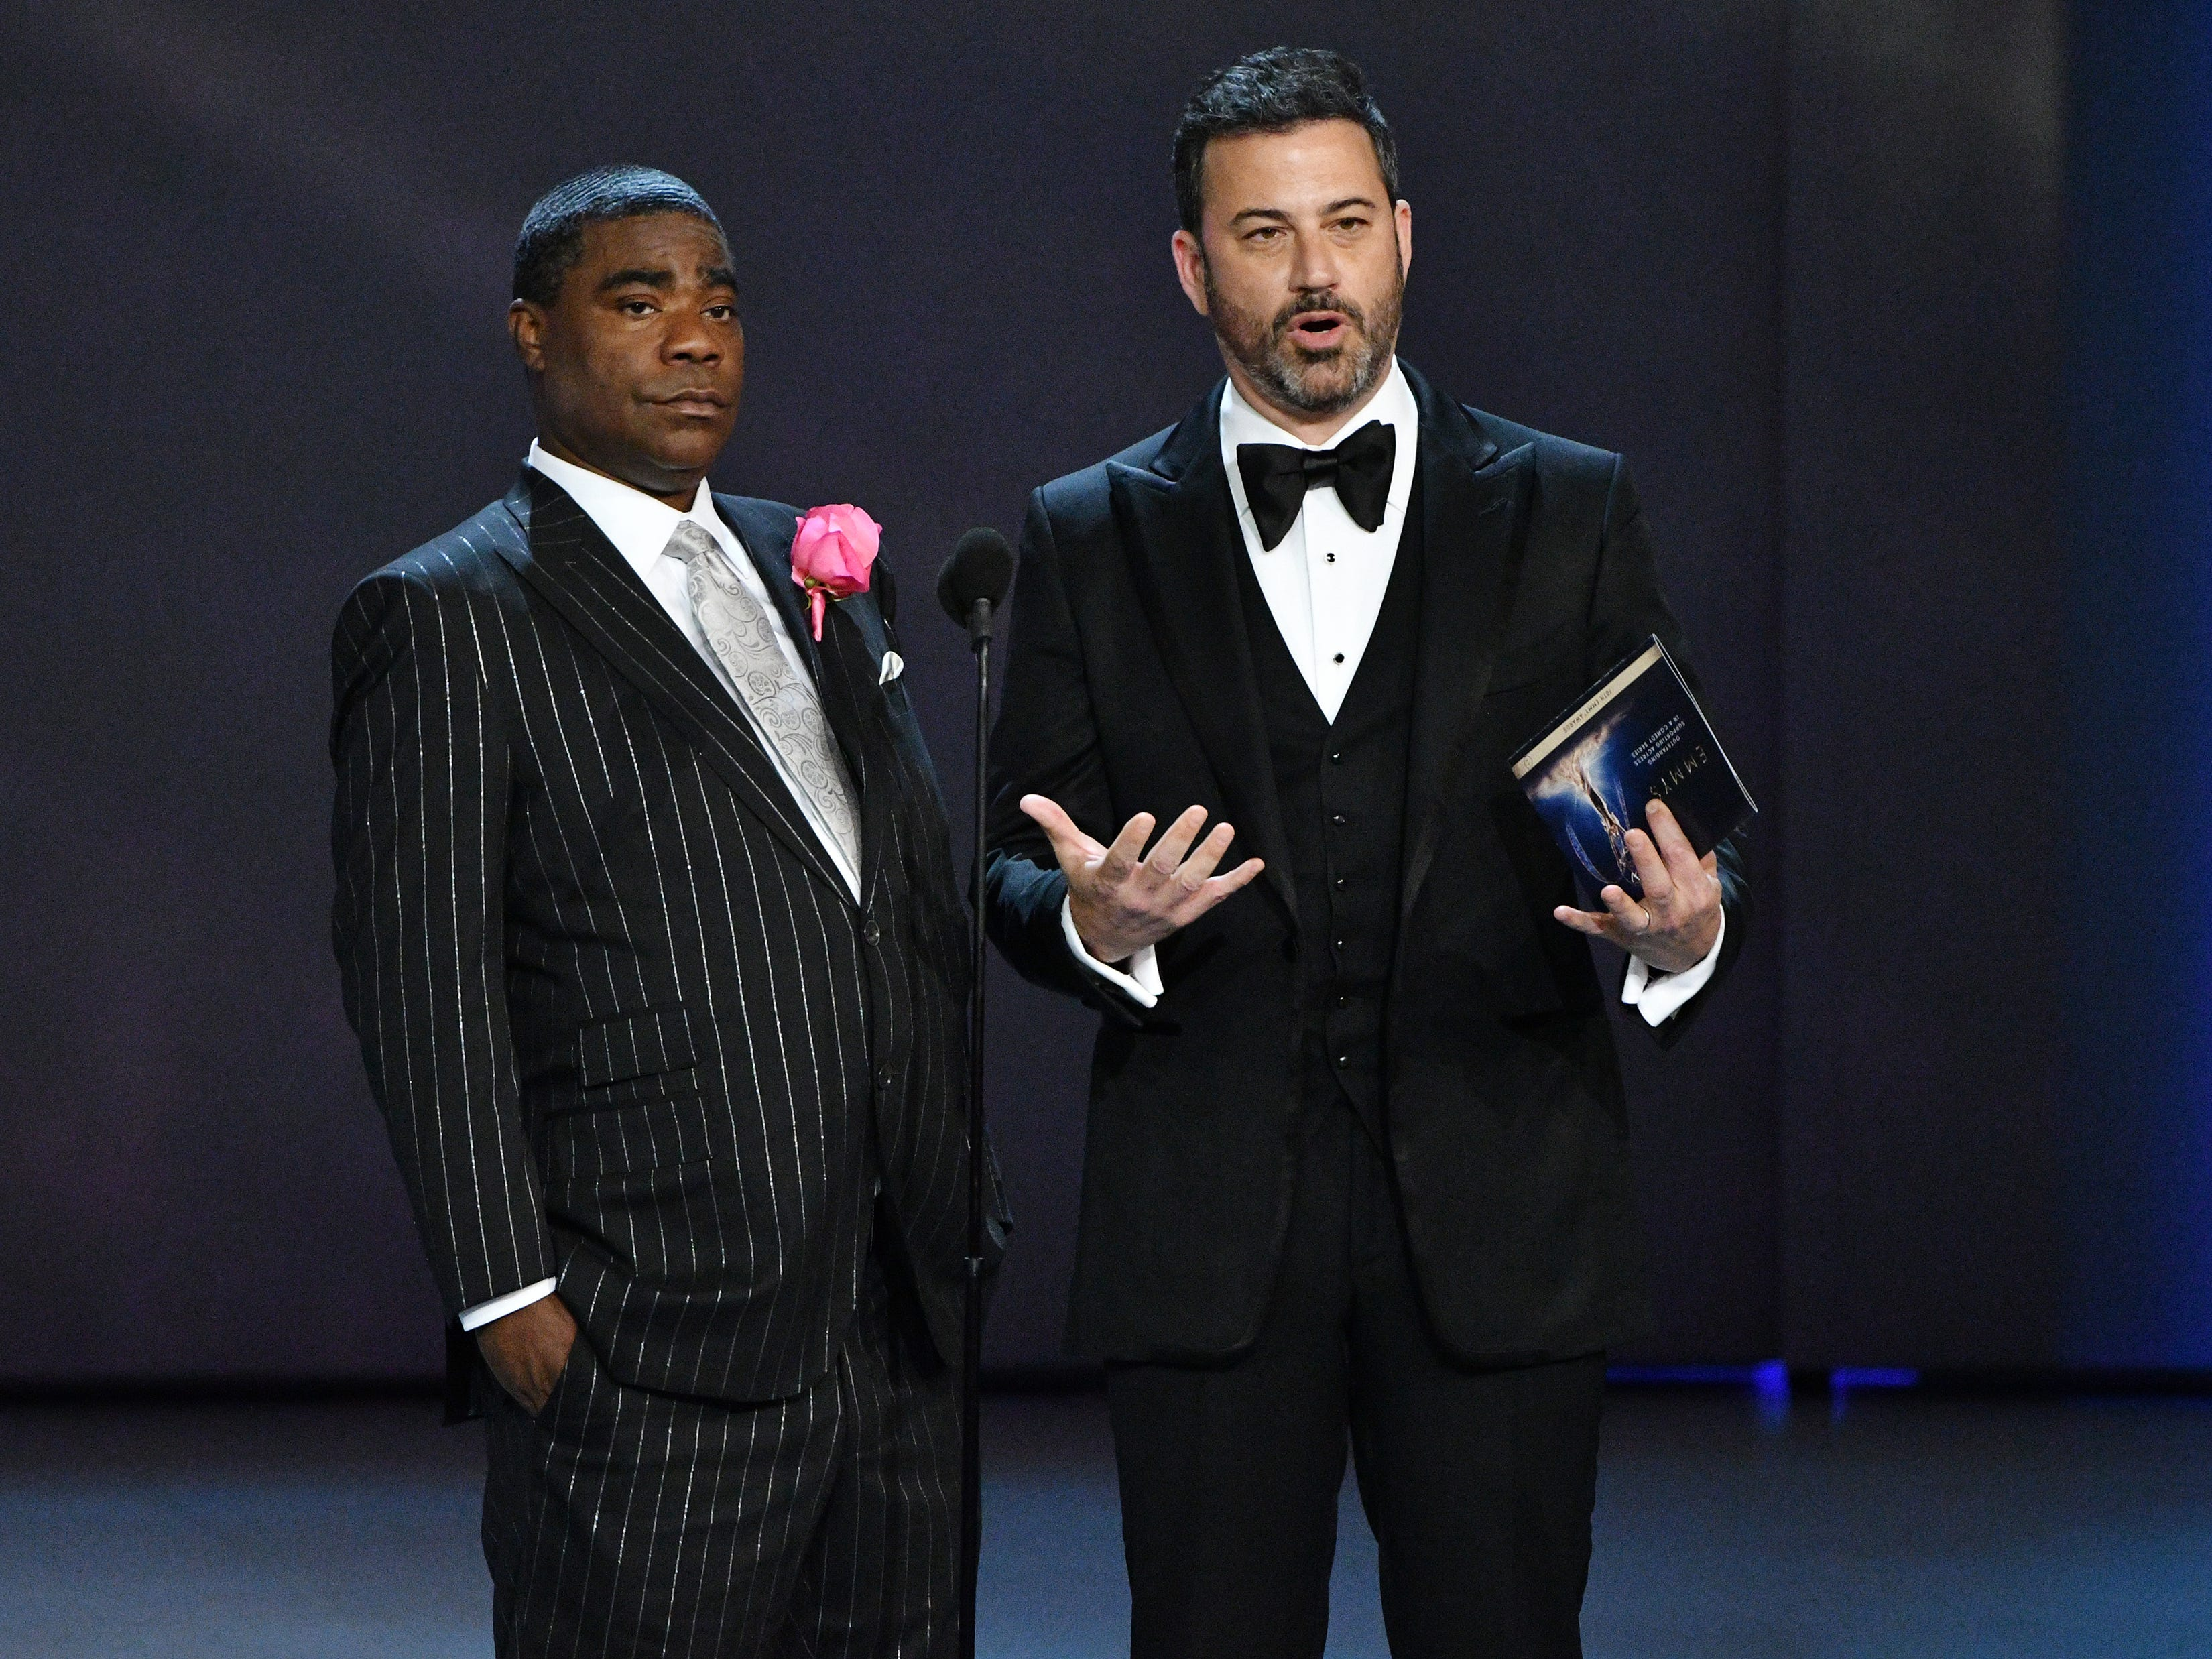 Tracy Morgan, left, and Jimmy Kimmel present the award for supporting actress in a comedy series.